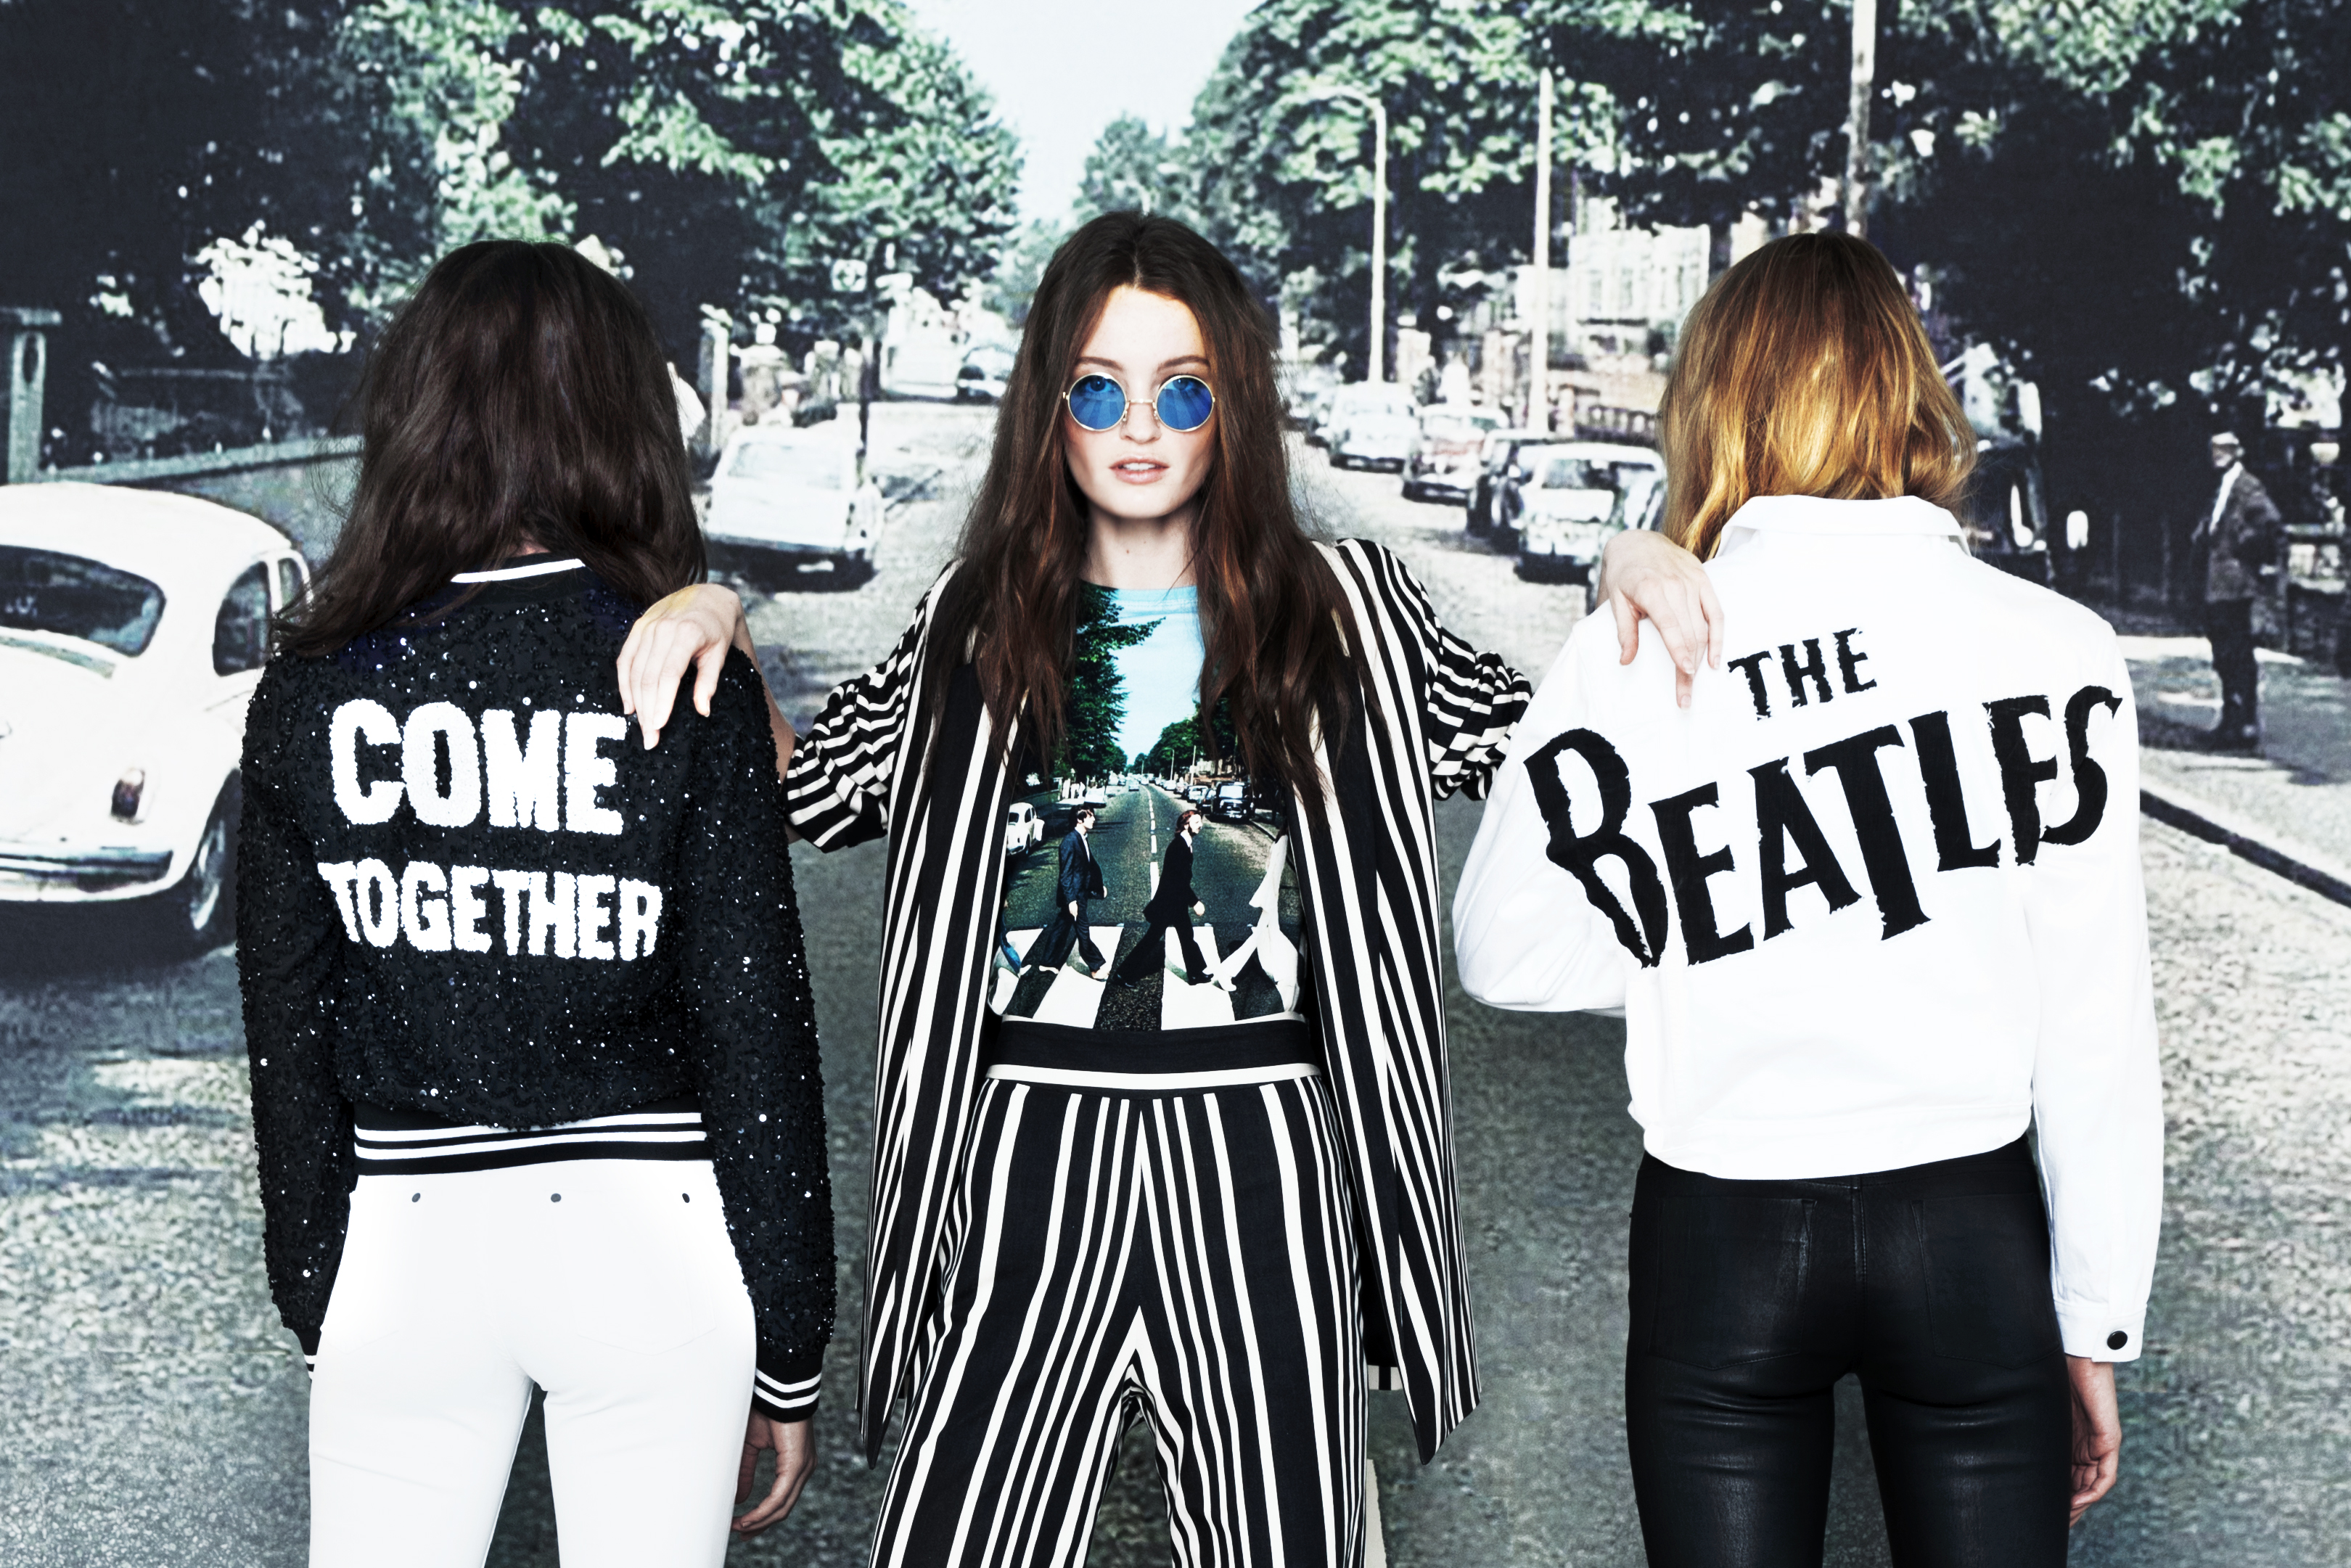 Alice + Olivia x The Beatles Collection